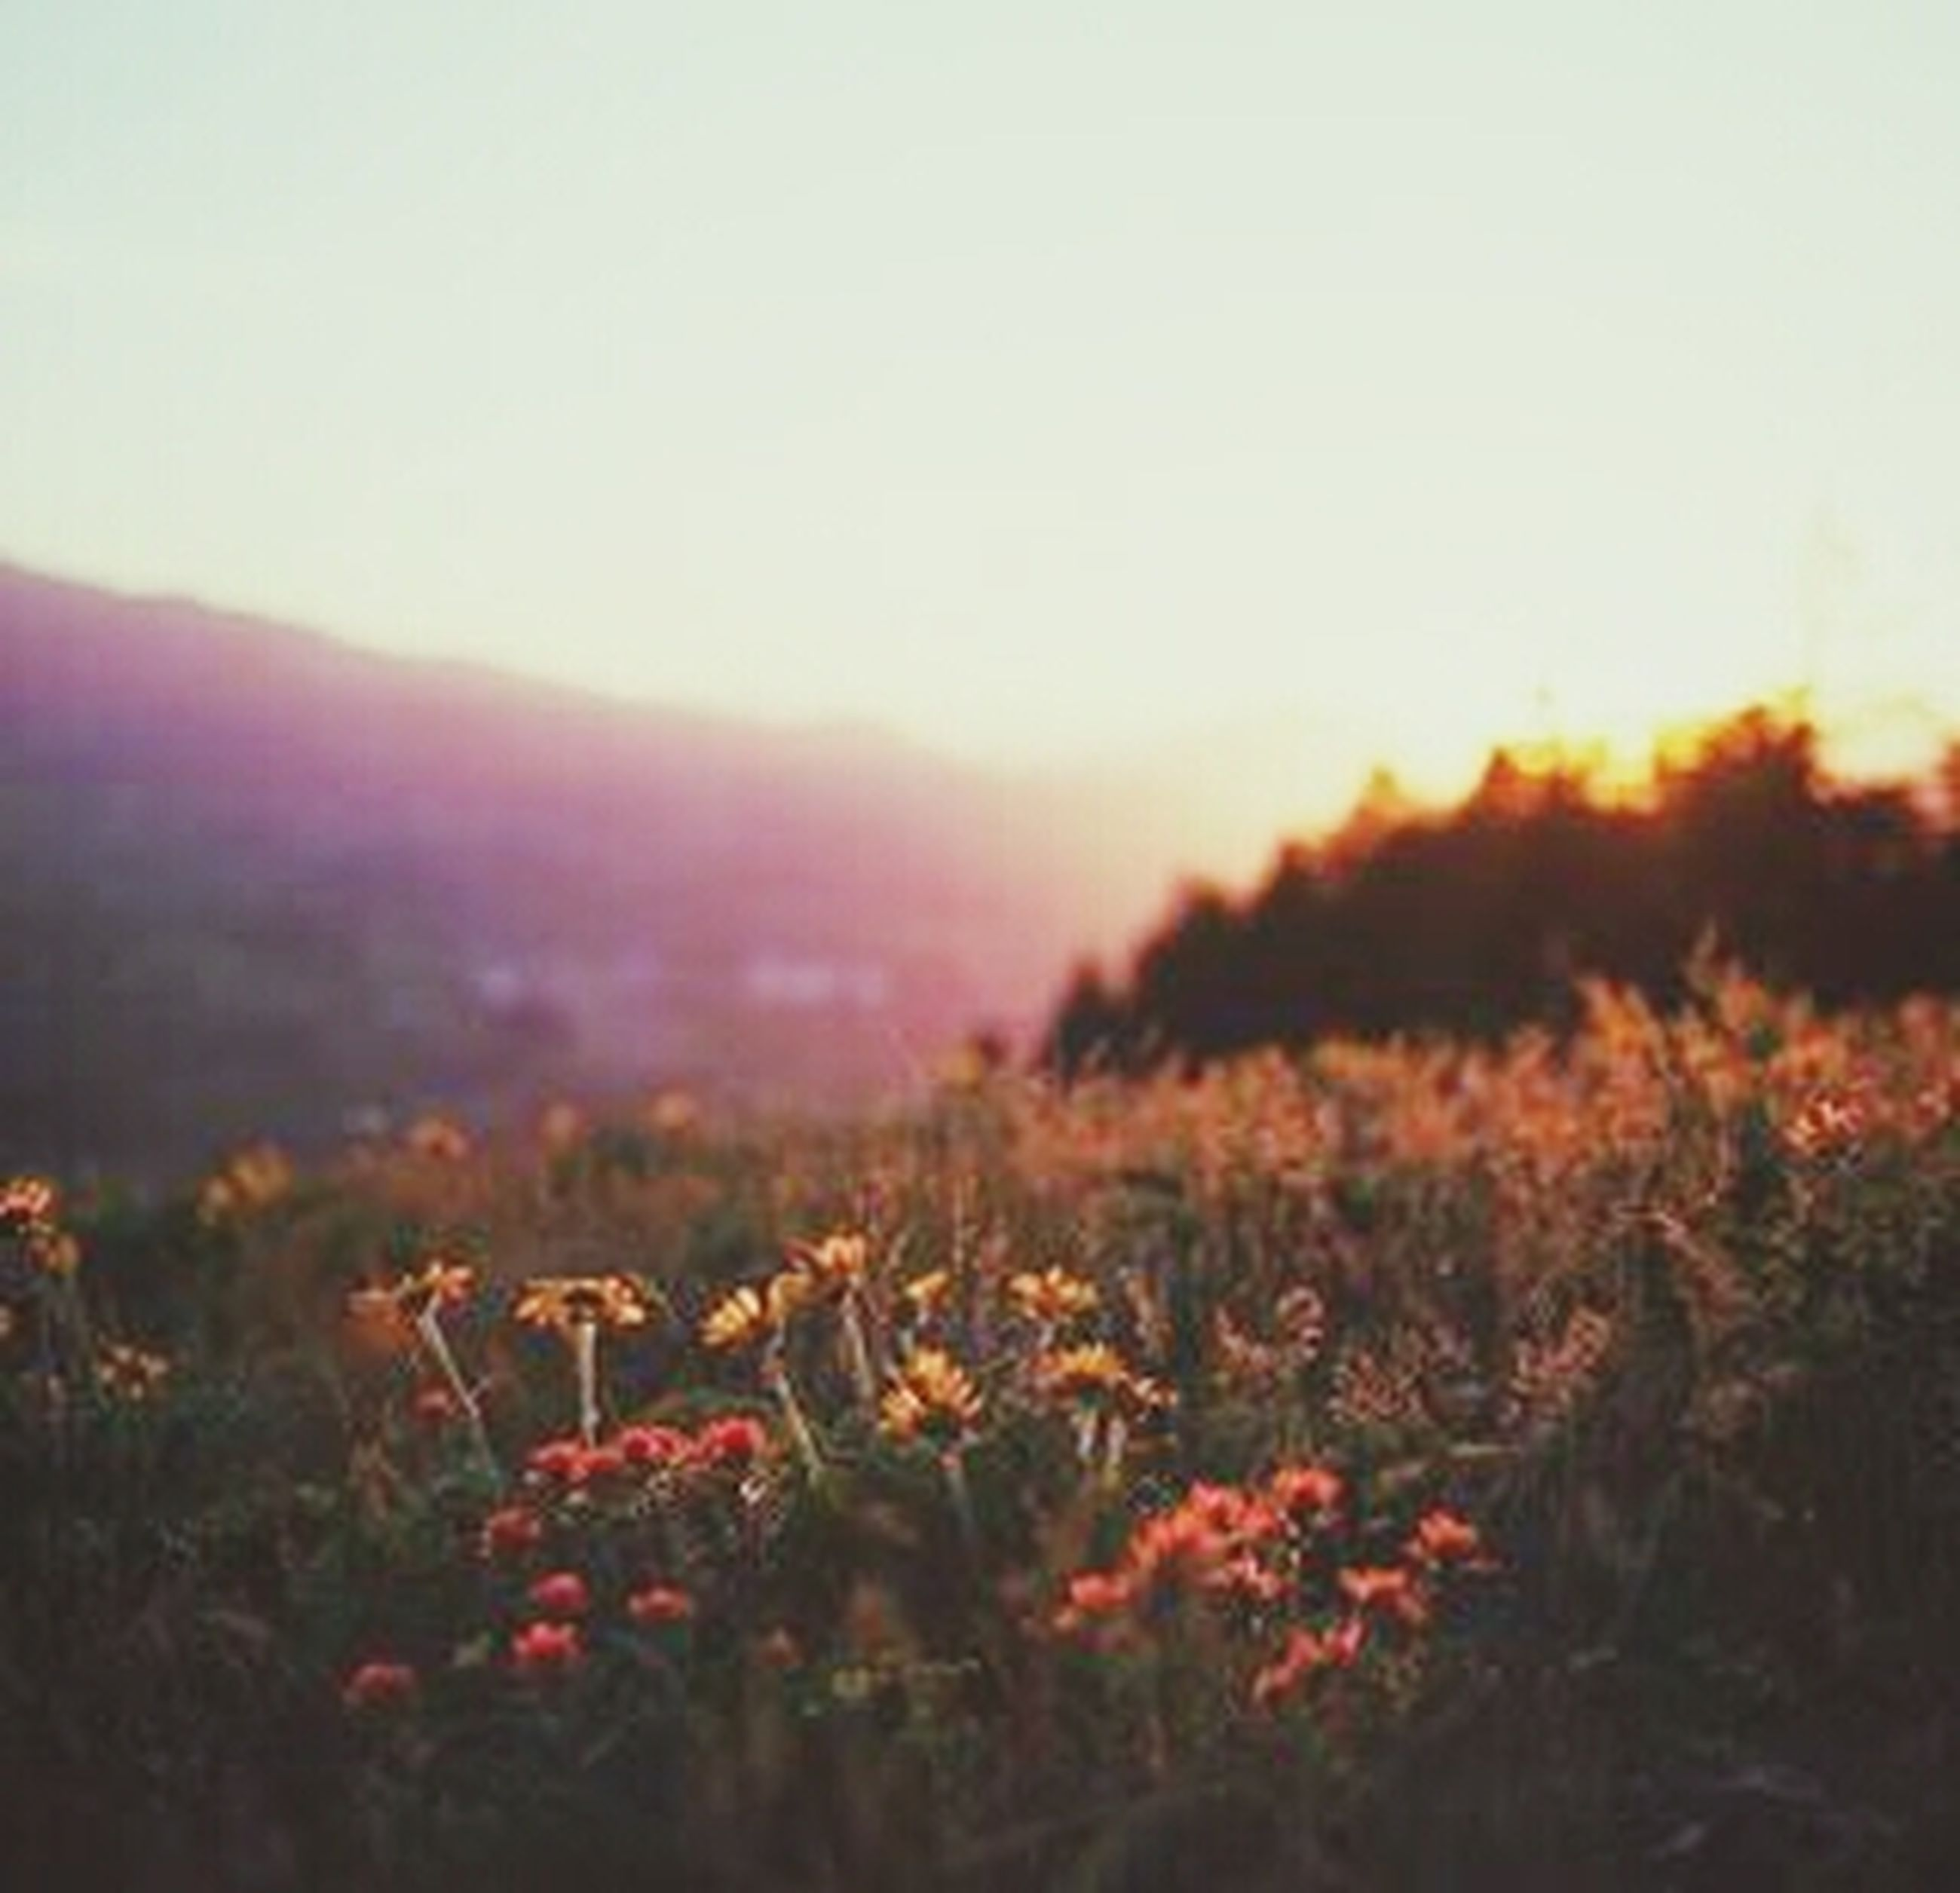 flower, beauty in nature, growth, nature, plant, field, freshness, sunset, clear sky, fragility, tranquility, focus on foreground, tranquil scene, landscape, scenics, sky, blooming, copy space, outdoors, petal